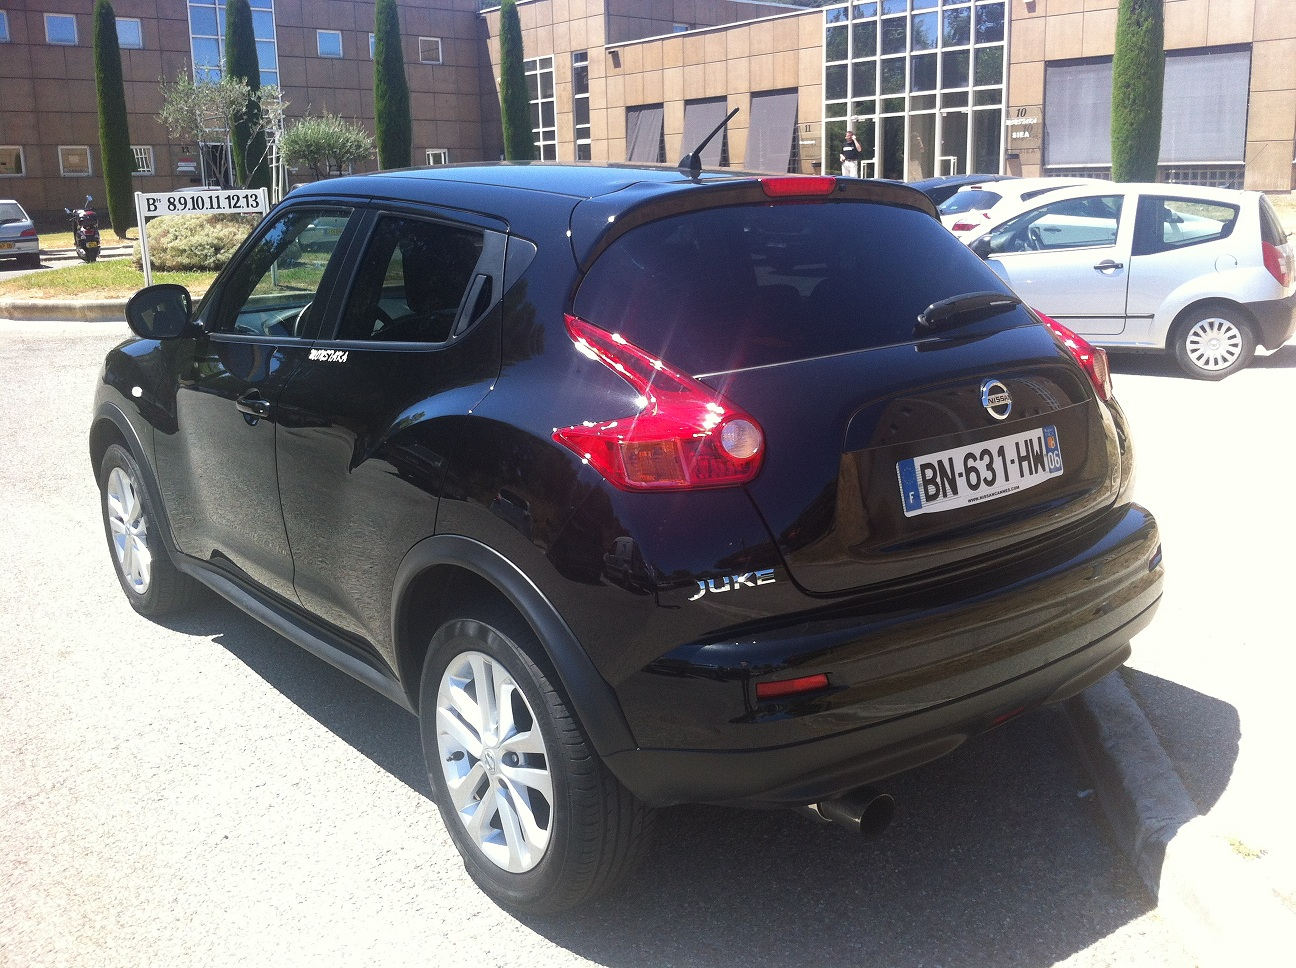 BLACK 2011 Nissan Juke 1.6L TURBO